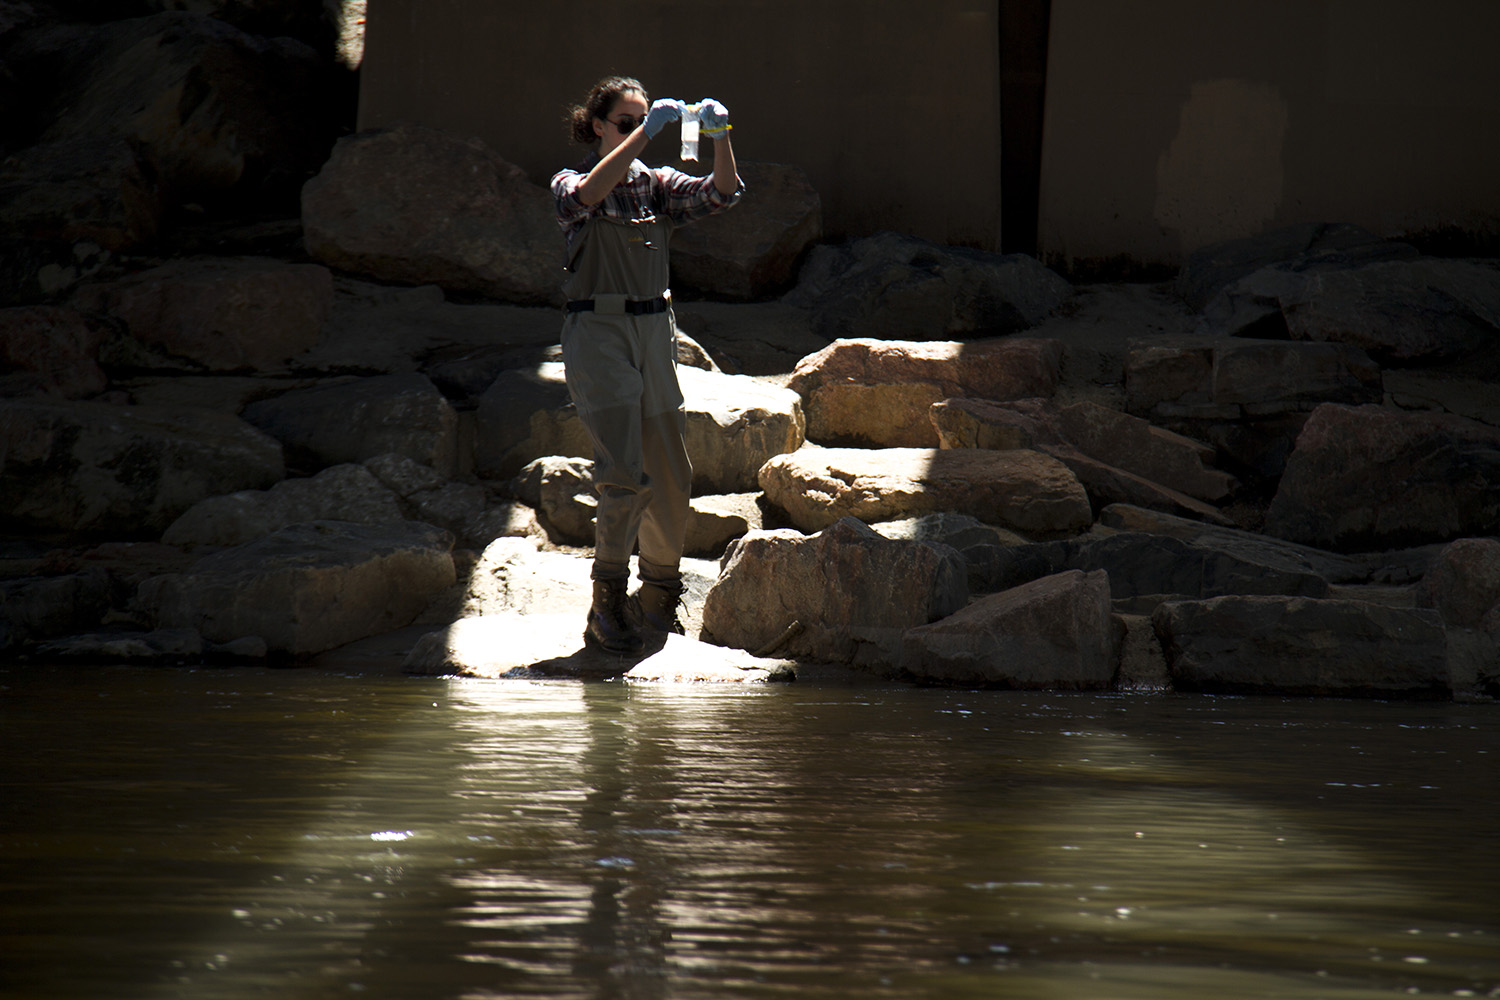 Denver Department of Environmental Health intern Meghan Schrik takes water samples from the Platte beneath Speer Boulevard. (Kevin J. Beaty/Denverite)  platte; cherry creek; river; water; health; environment; city; confluence park; denver; colorado; kevinjbeaty; denverite